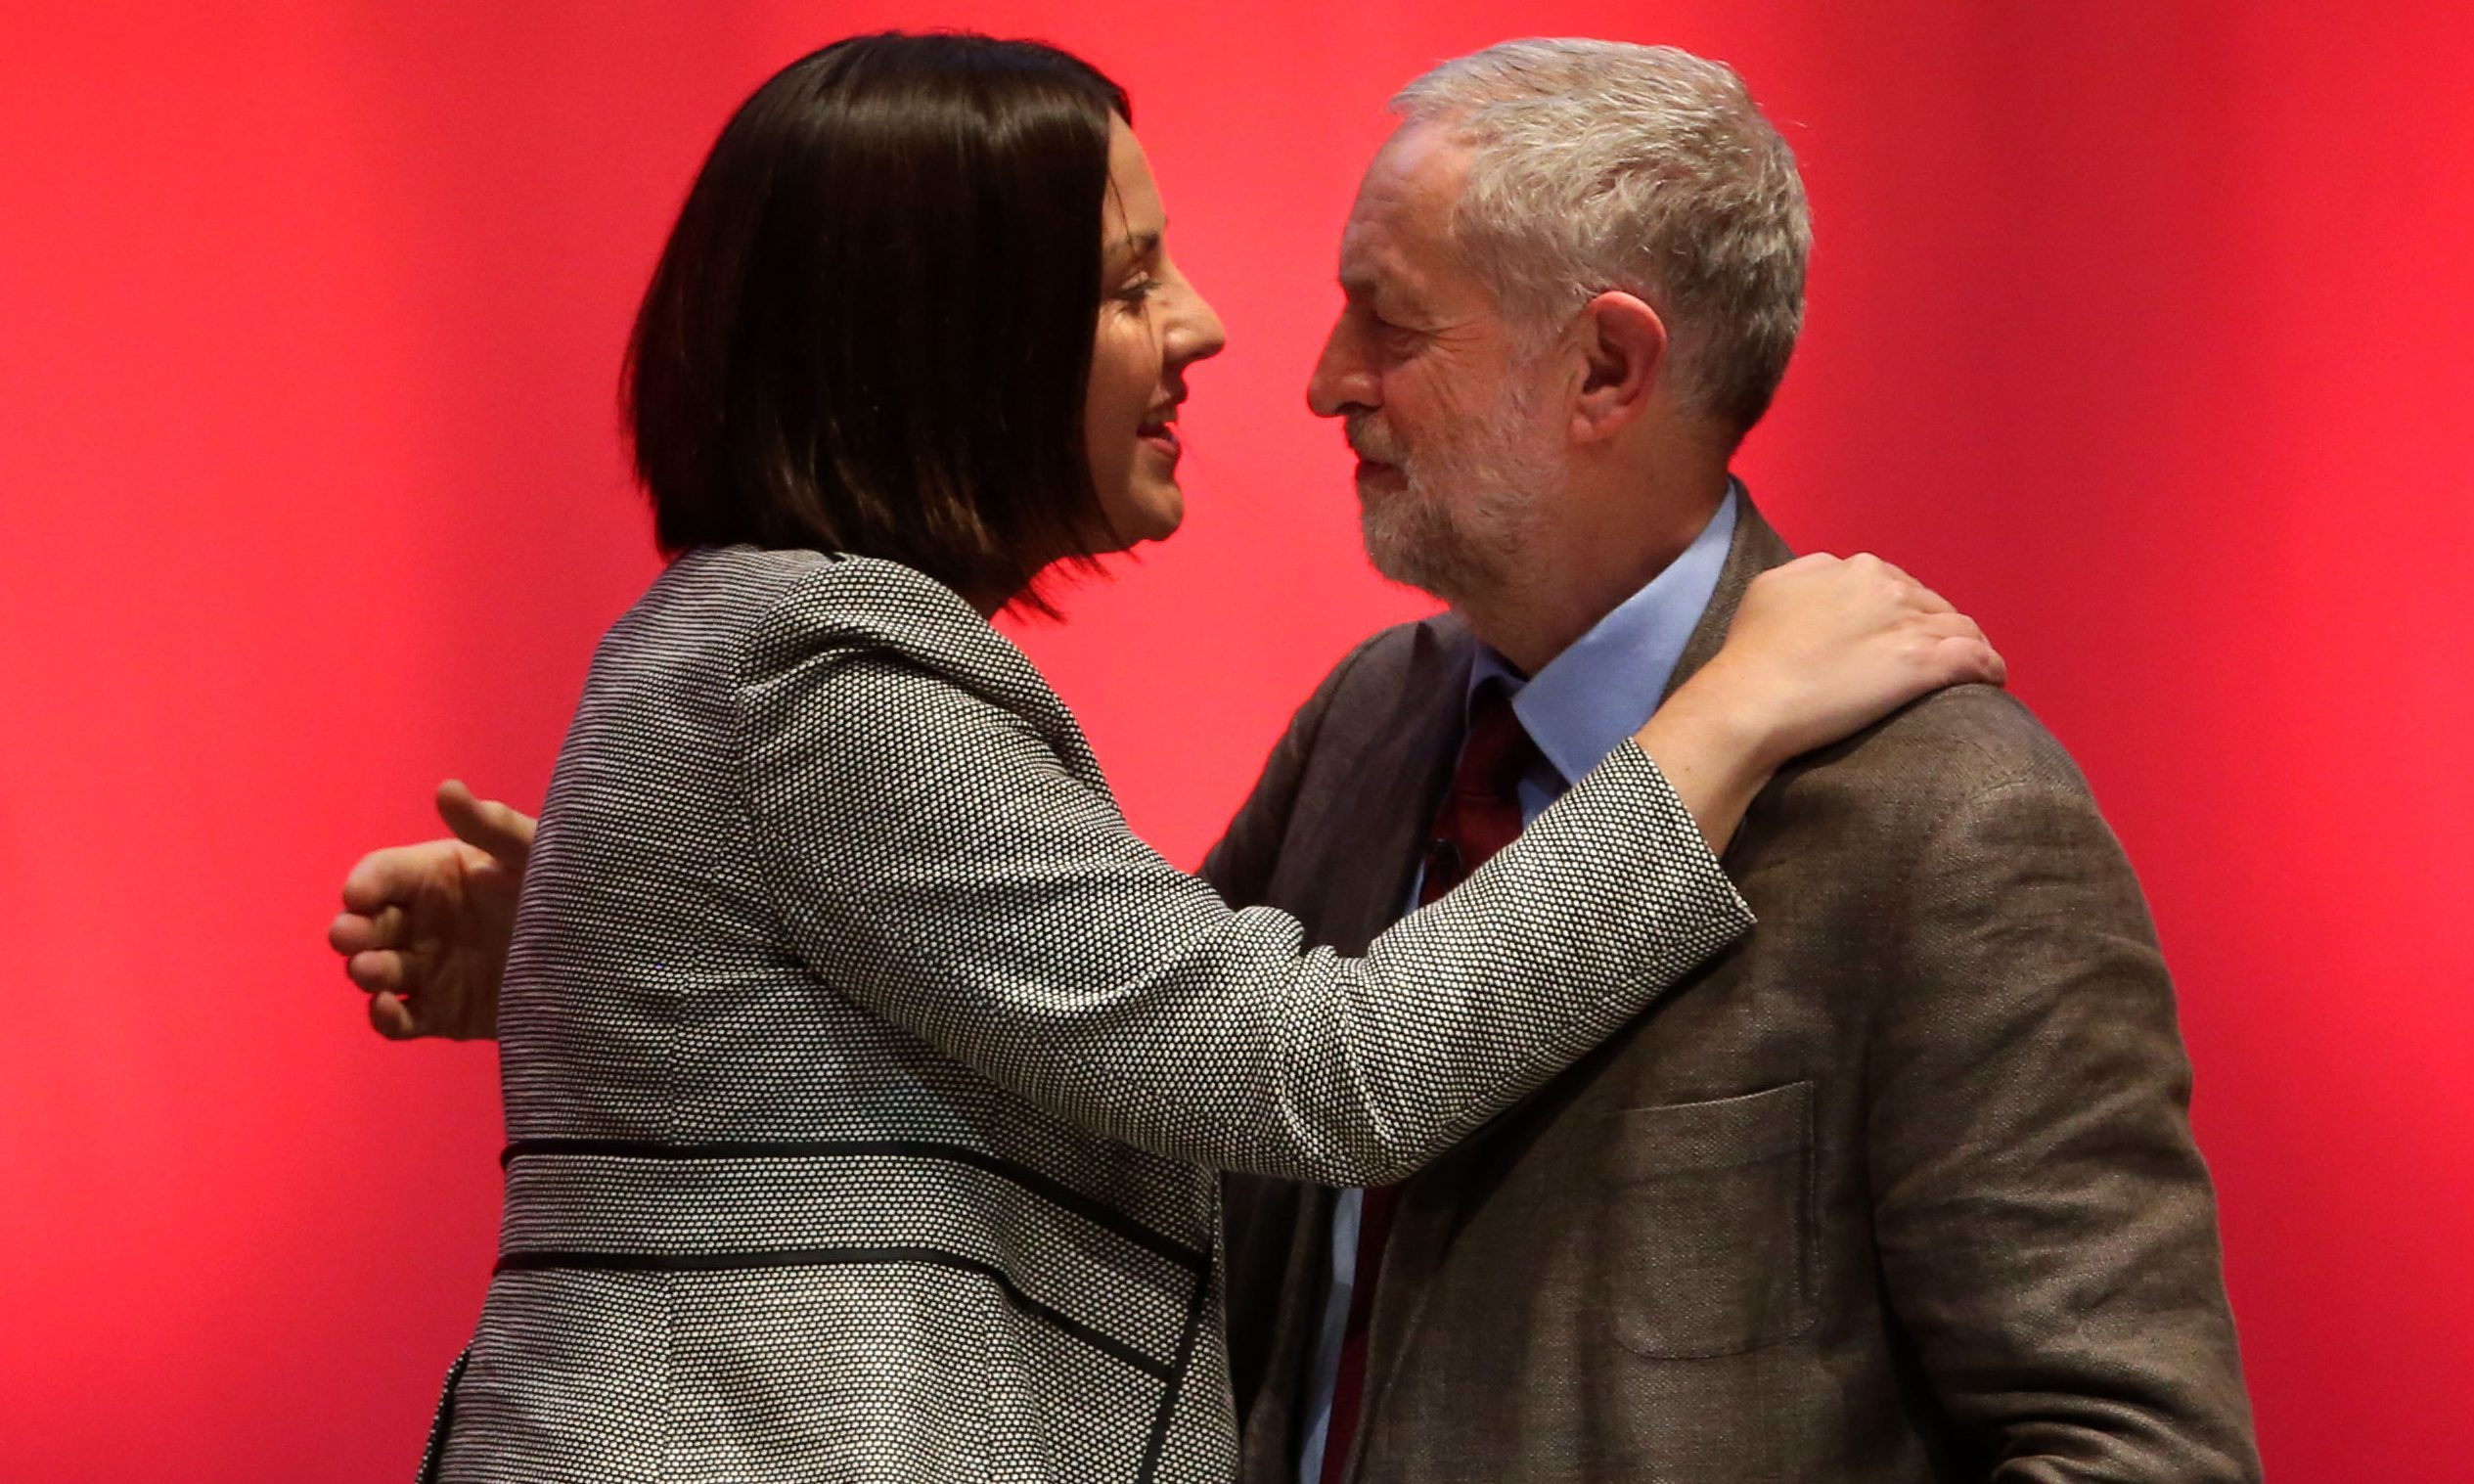 Labour leader Jeremy Corbyn with Scottish Labour leader Kezia Dugdale after his speech at Perth Concert Hall on the first day of the Scottish Labour conference.